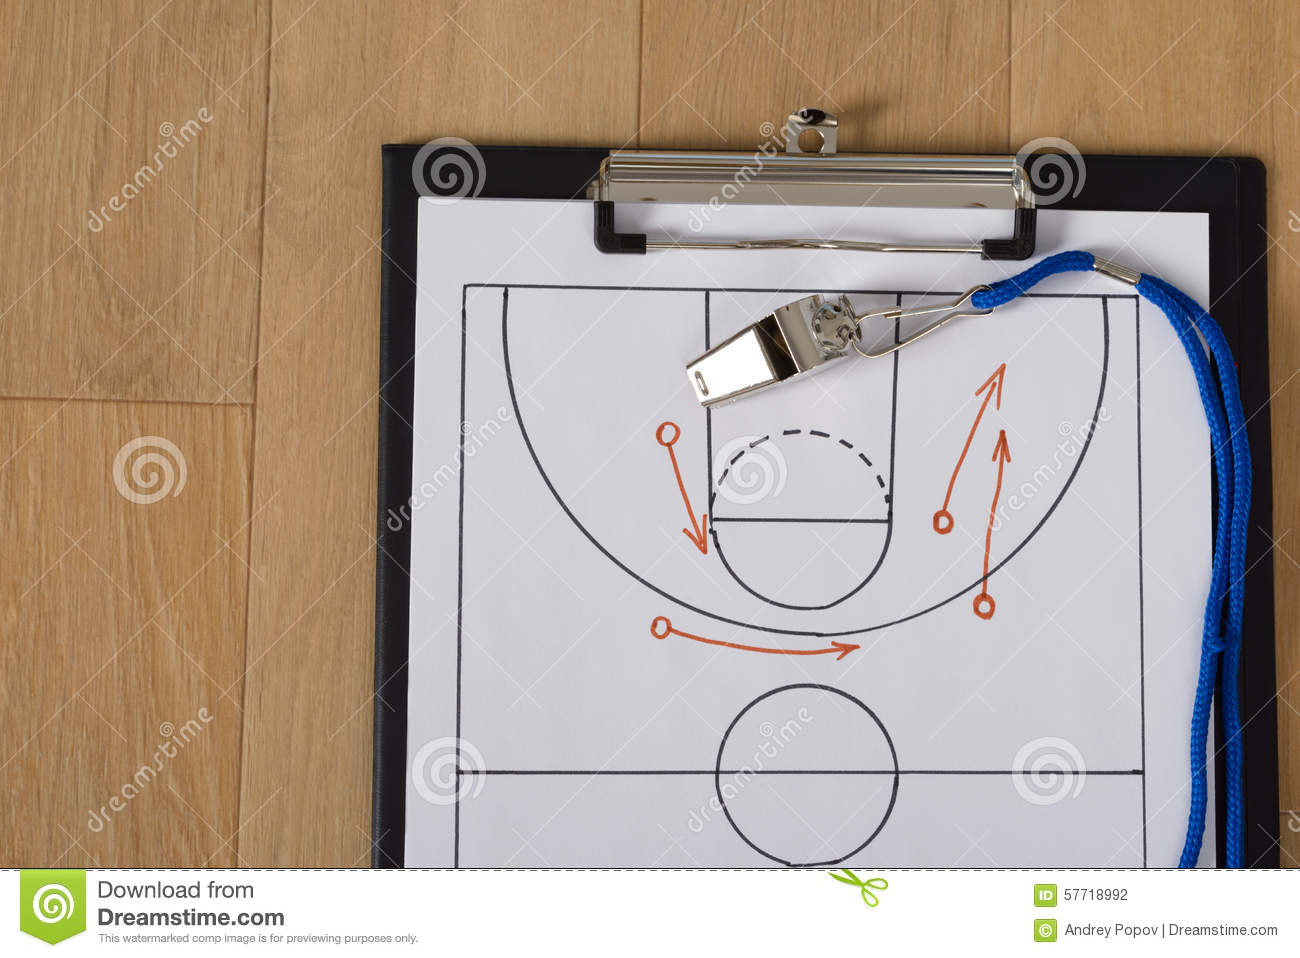 Tactics paper basketball